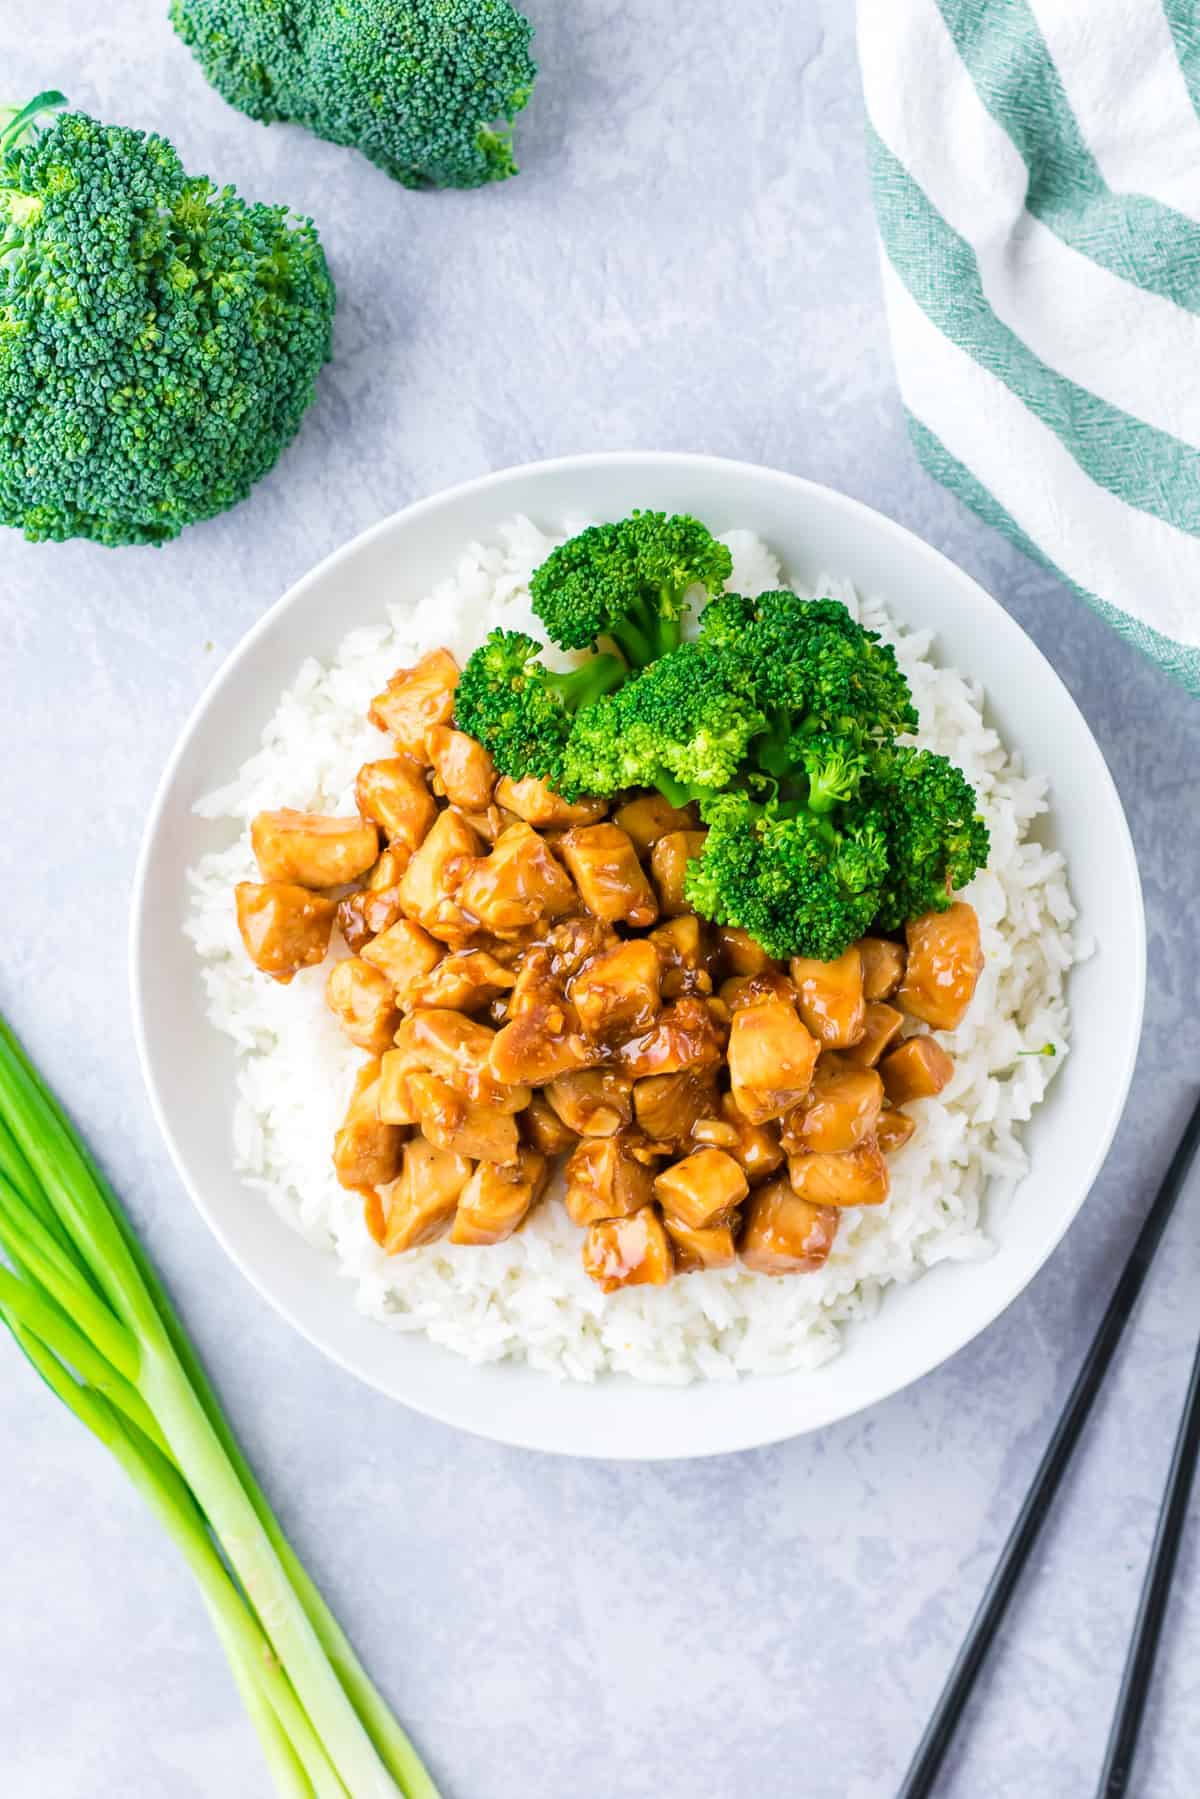 chicken teriyaki with broccoli and rice on plate